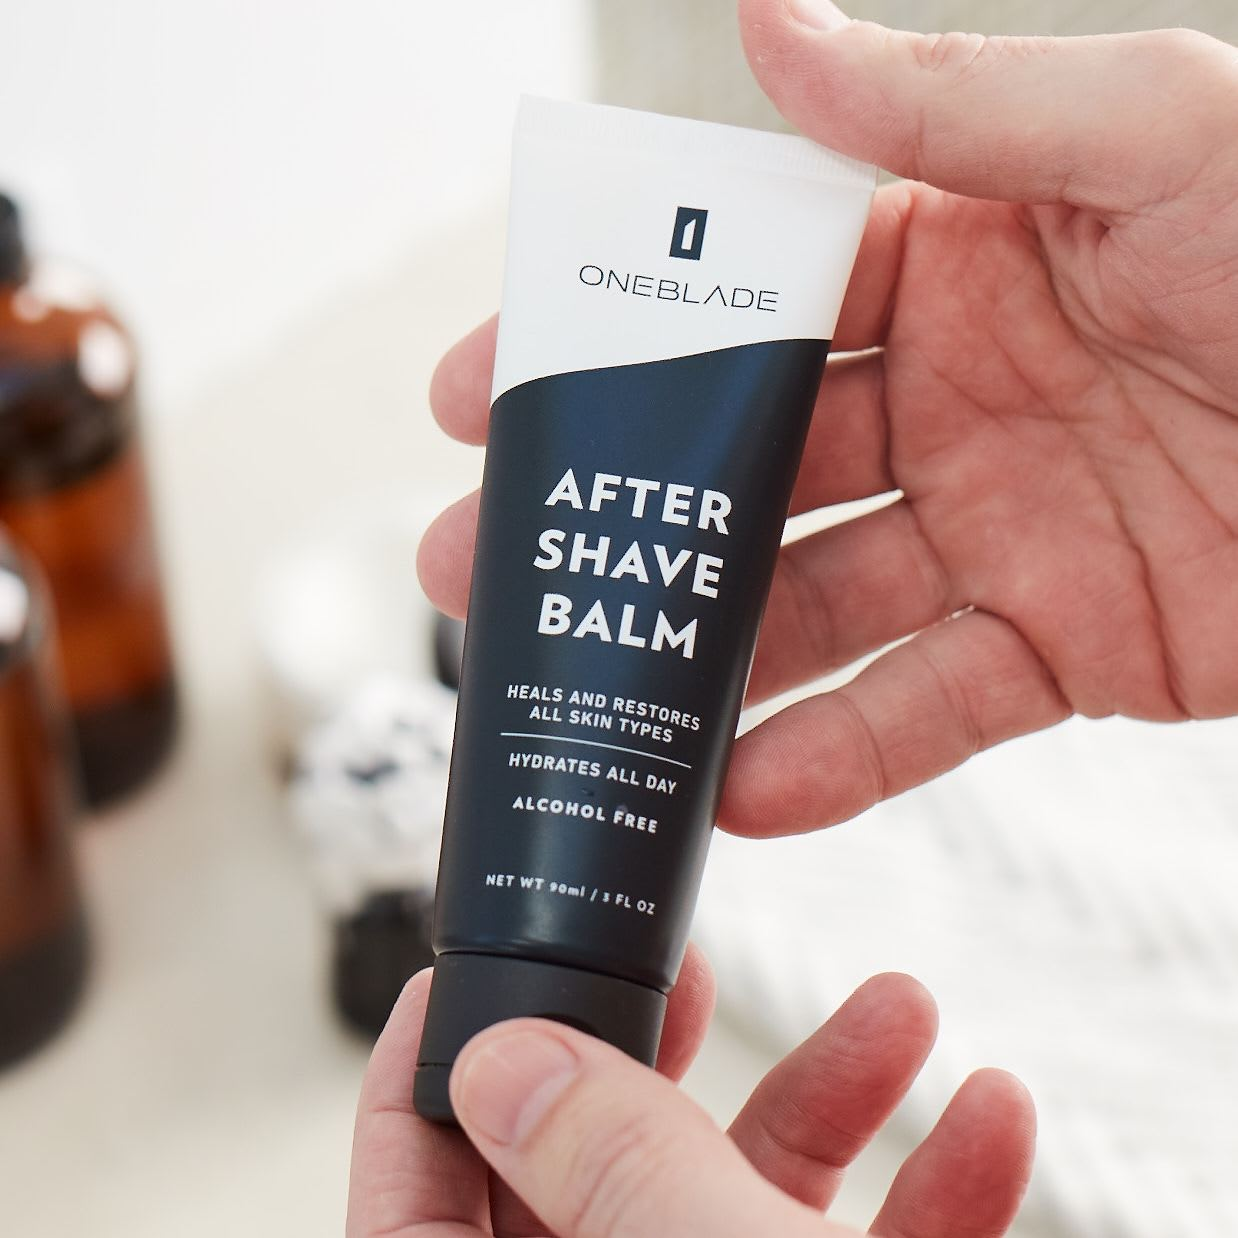 OneBlade after shave balm held by hands